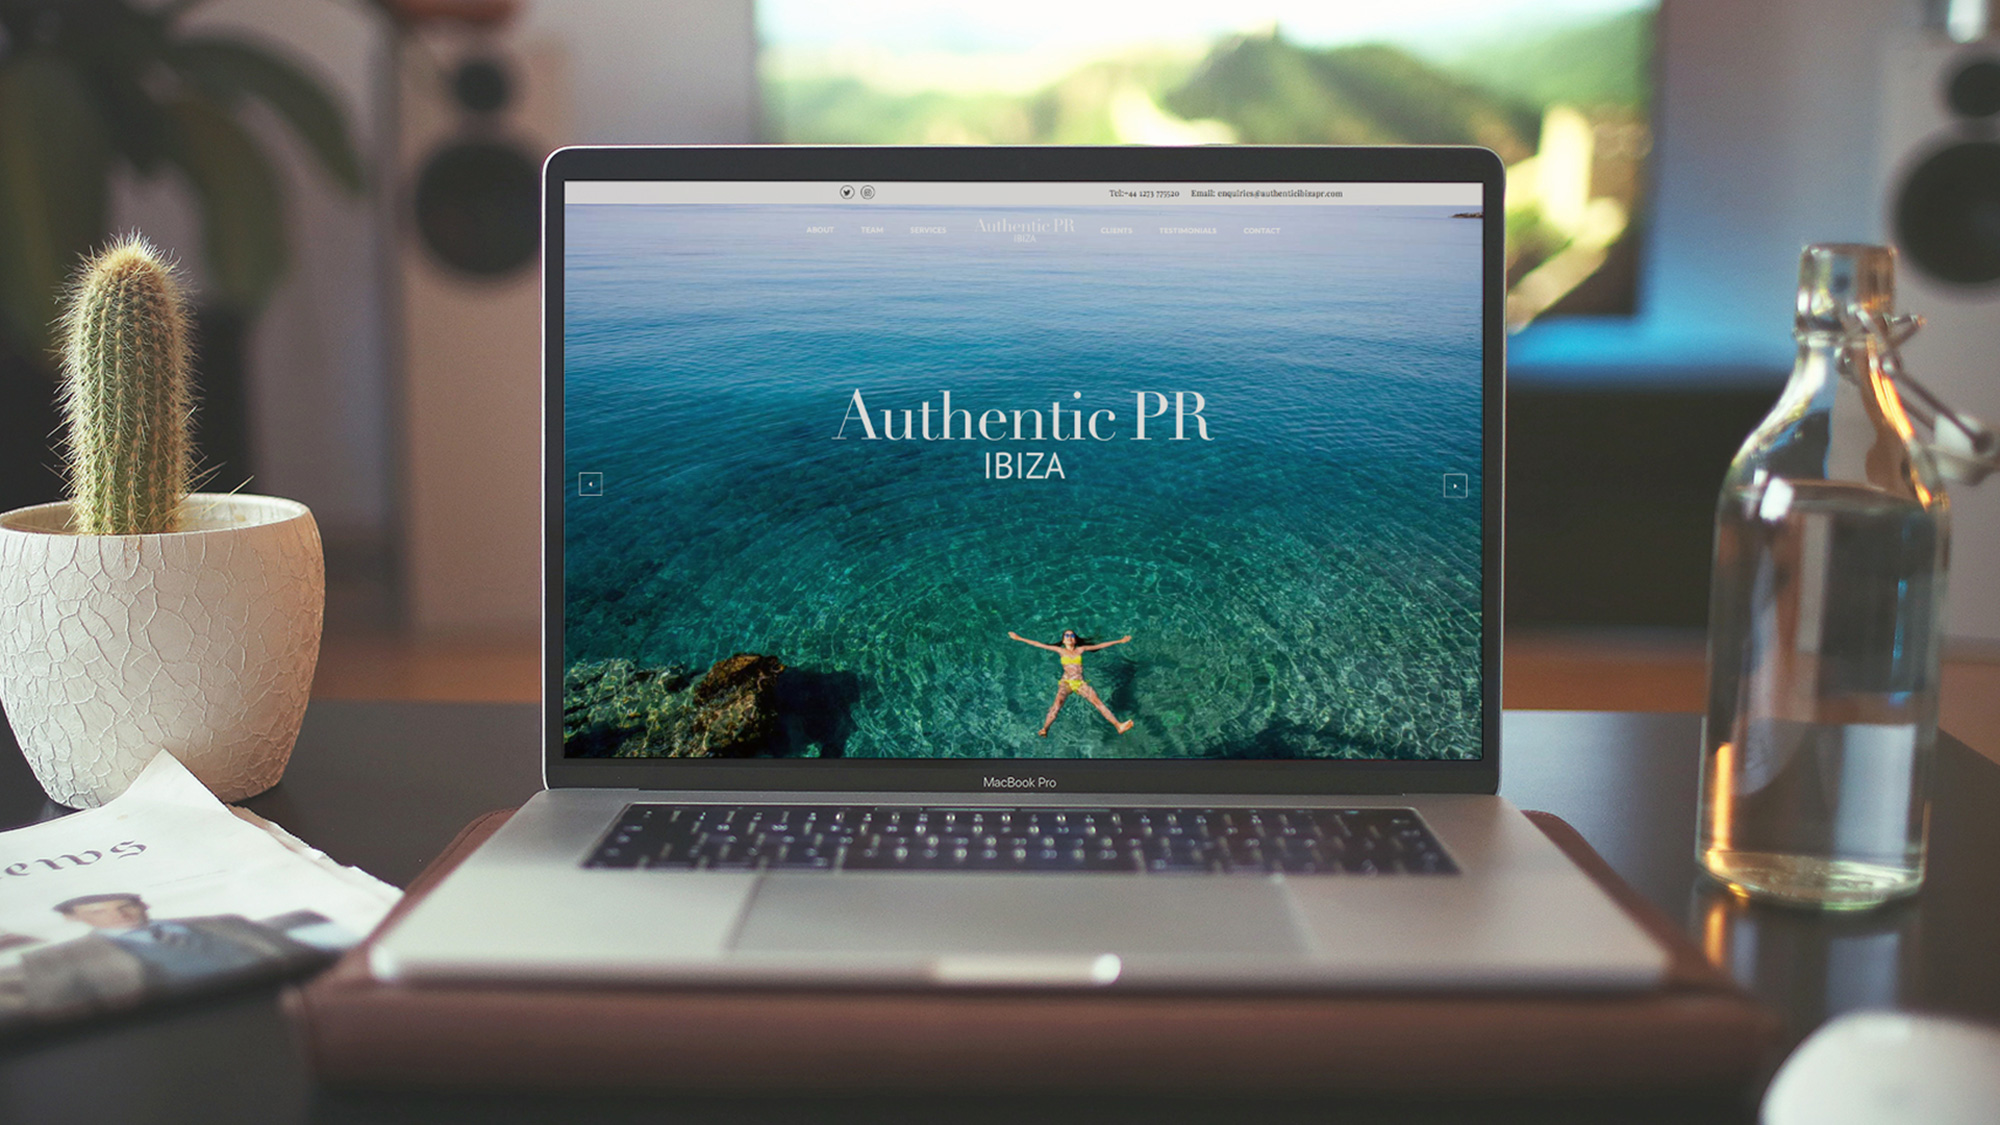 Authentic Ibiza PR Website